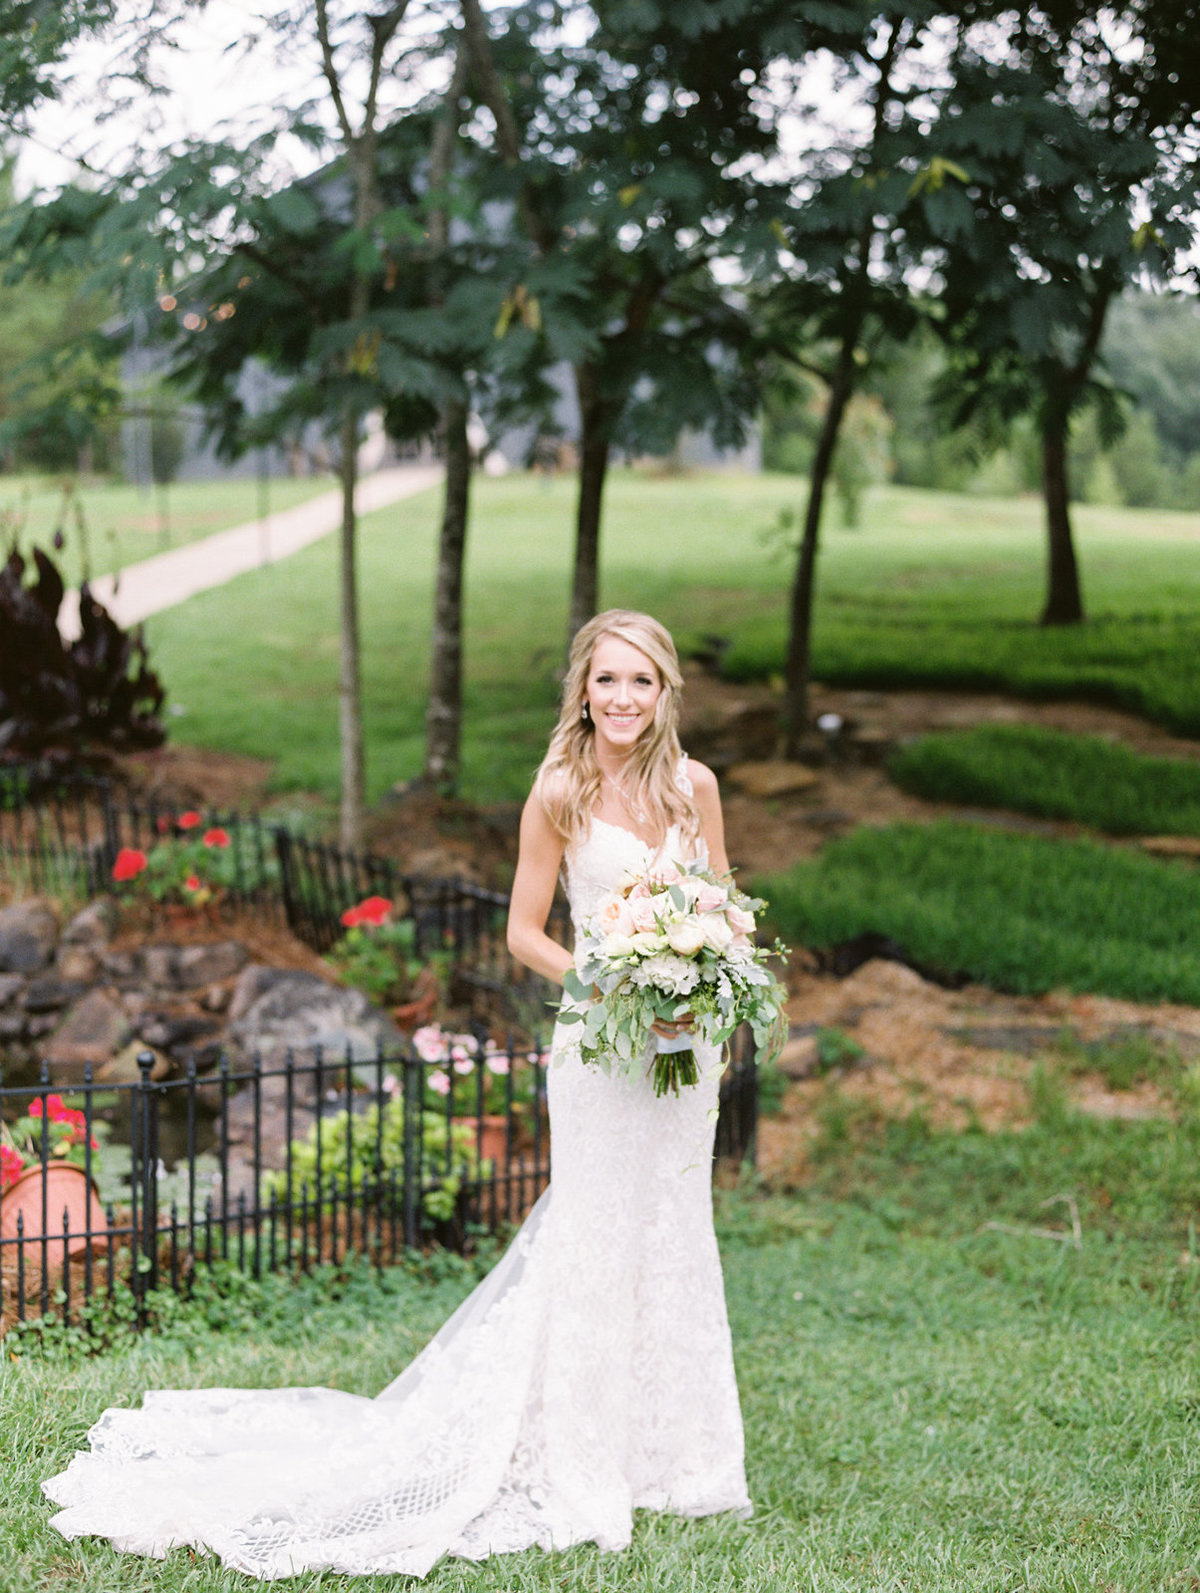 Sydney & William_Lindsay Ott Photography-135